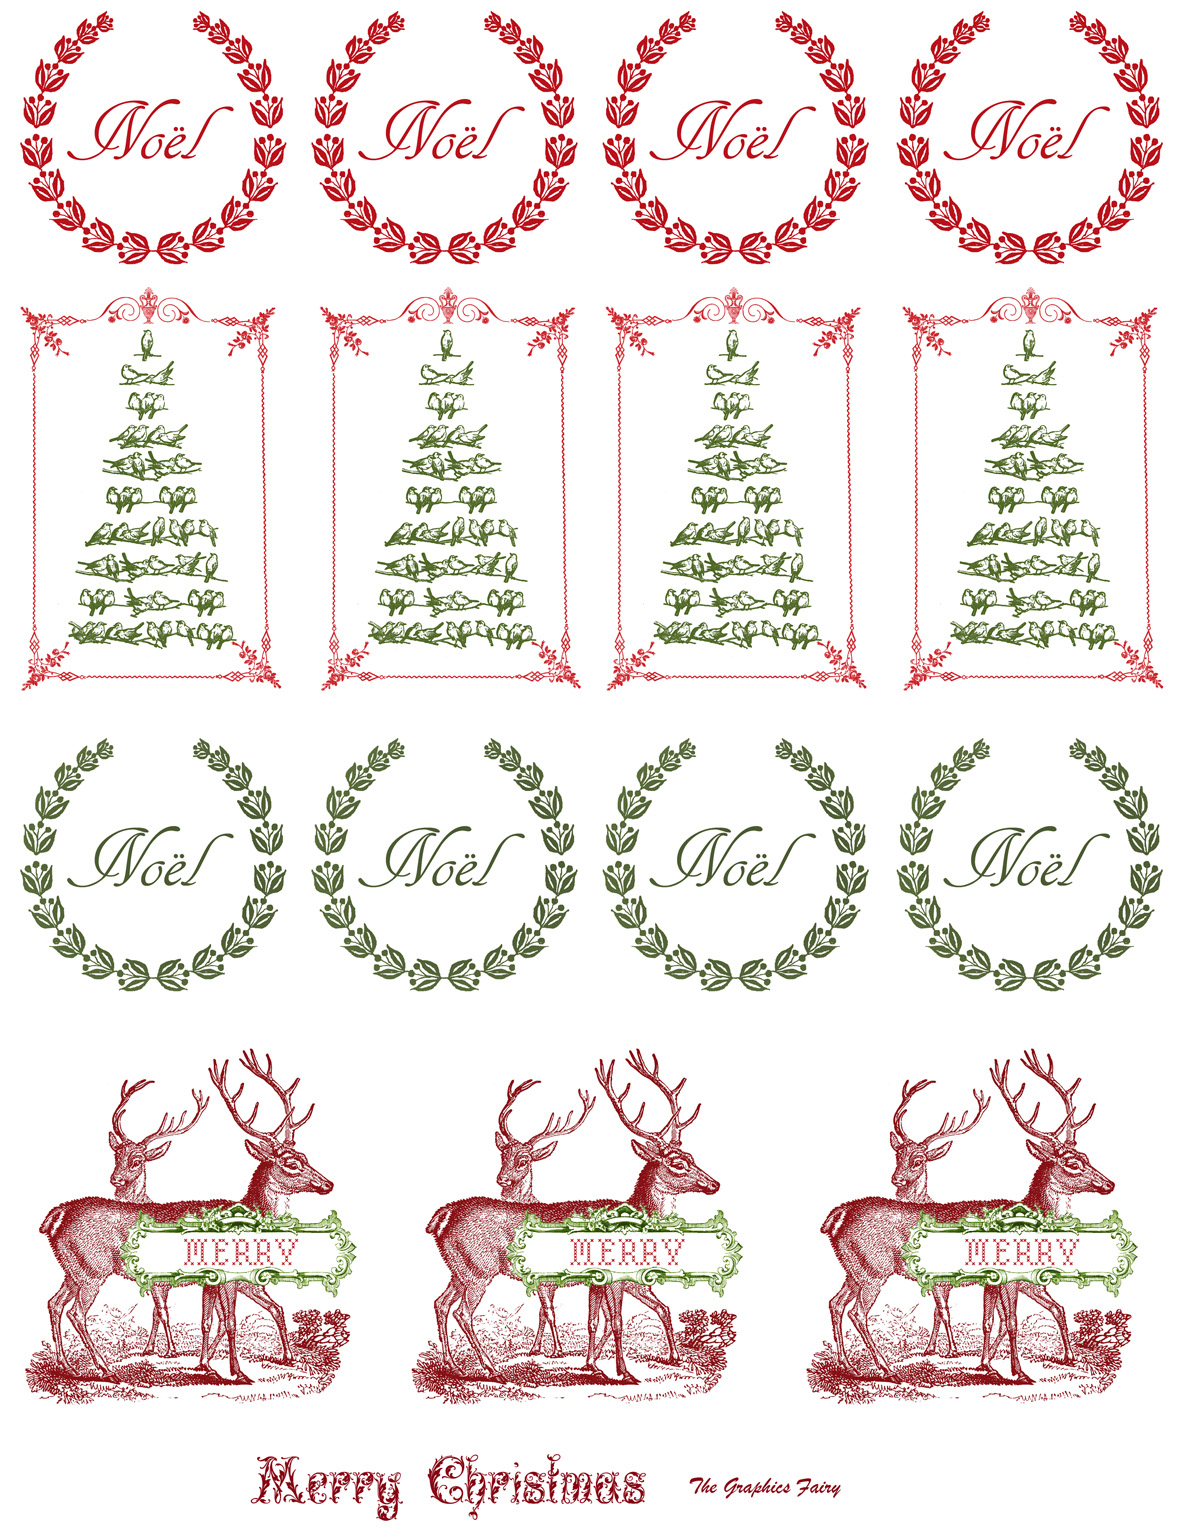 It's just a photo of Inventive Printable Christmas Stickers